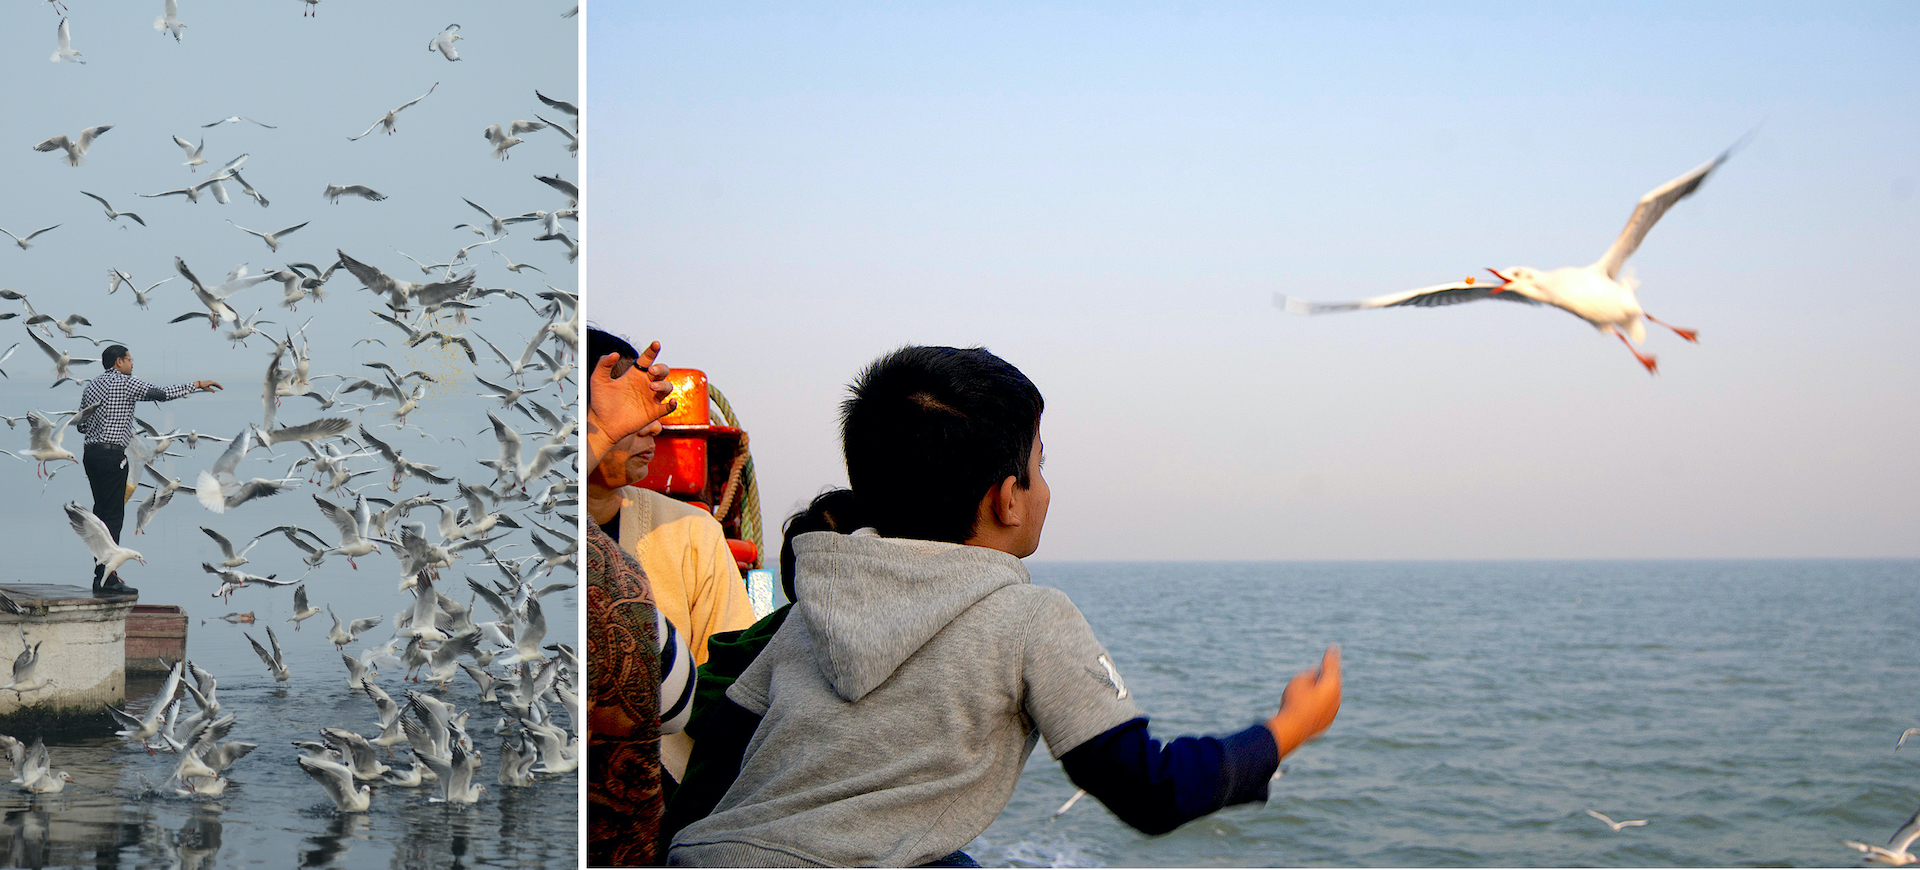 Seagulls are observant birds that do not pass up an opportunity for free meals as seen in these images from the Yamuna river in New Delhi (left) and a ferry on the Mumbai-Alibaug route (right). Photos: Naveen Macro/Shutterstock (left), Mayank Soni (right)